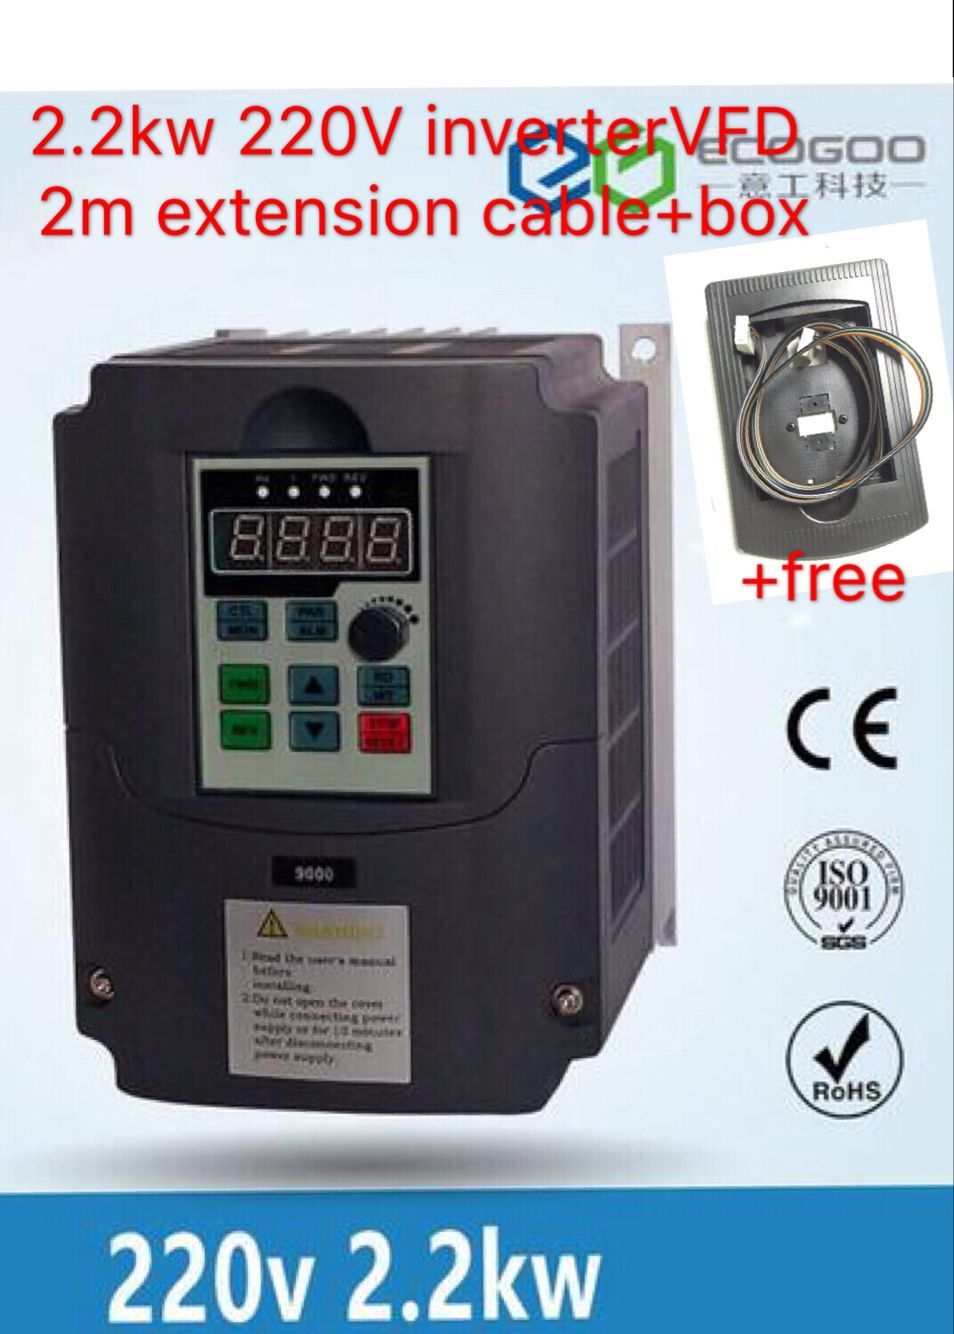 цена на 2.2KW 220V 3HP Variable Frequency VFD Inverter Output 3 phase 400Hz 10A & Extension cable/control panel box